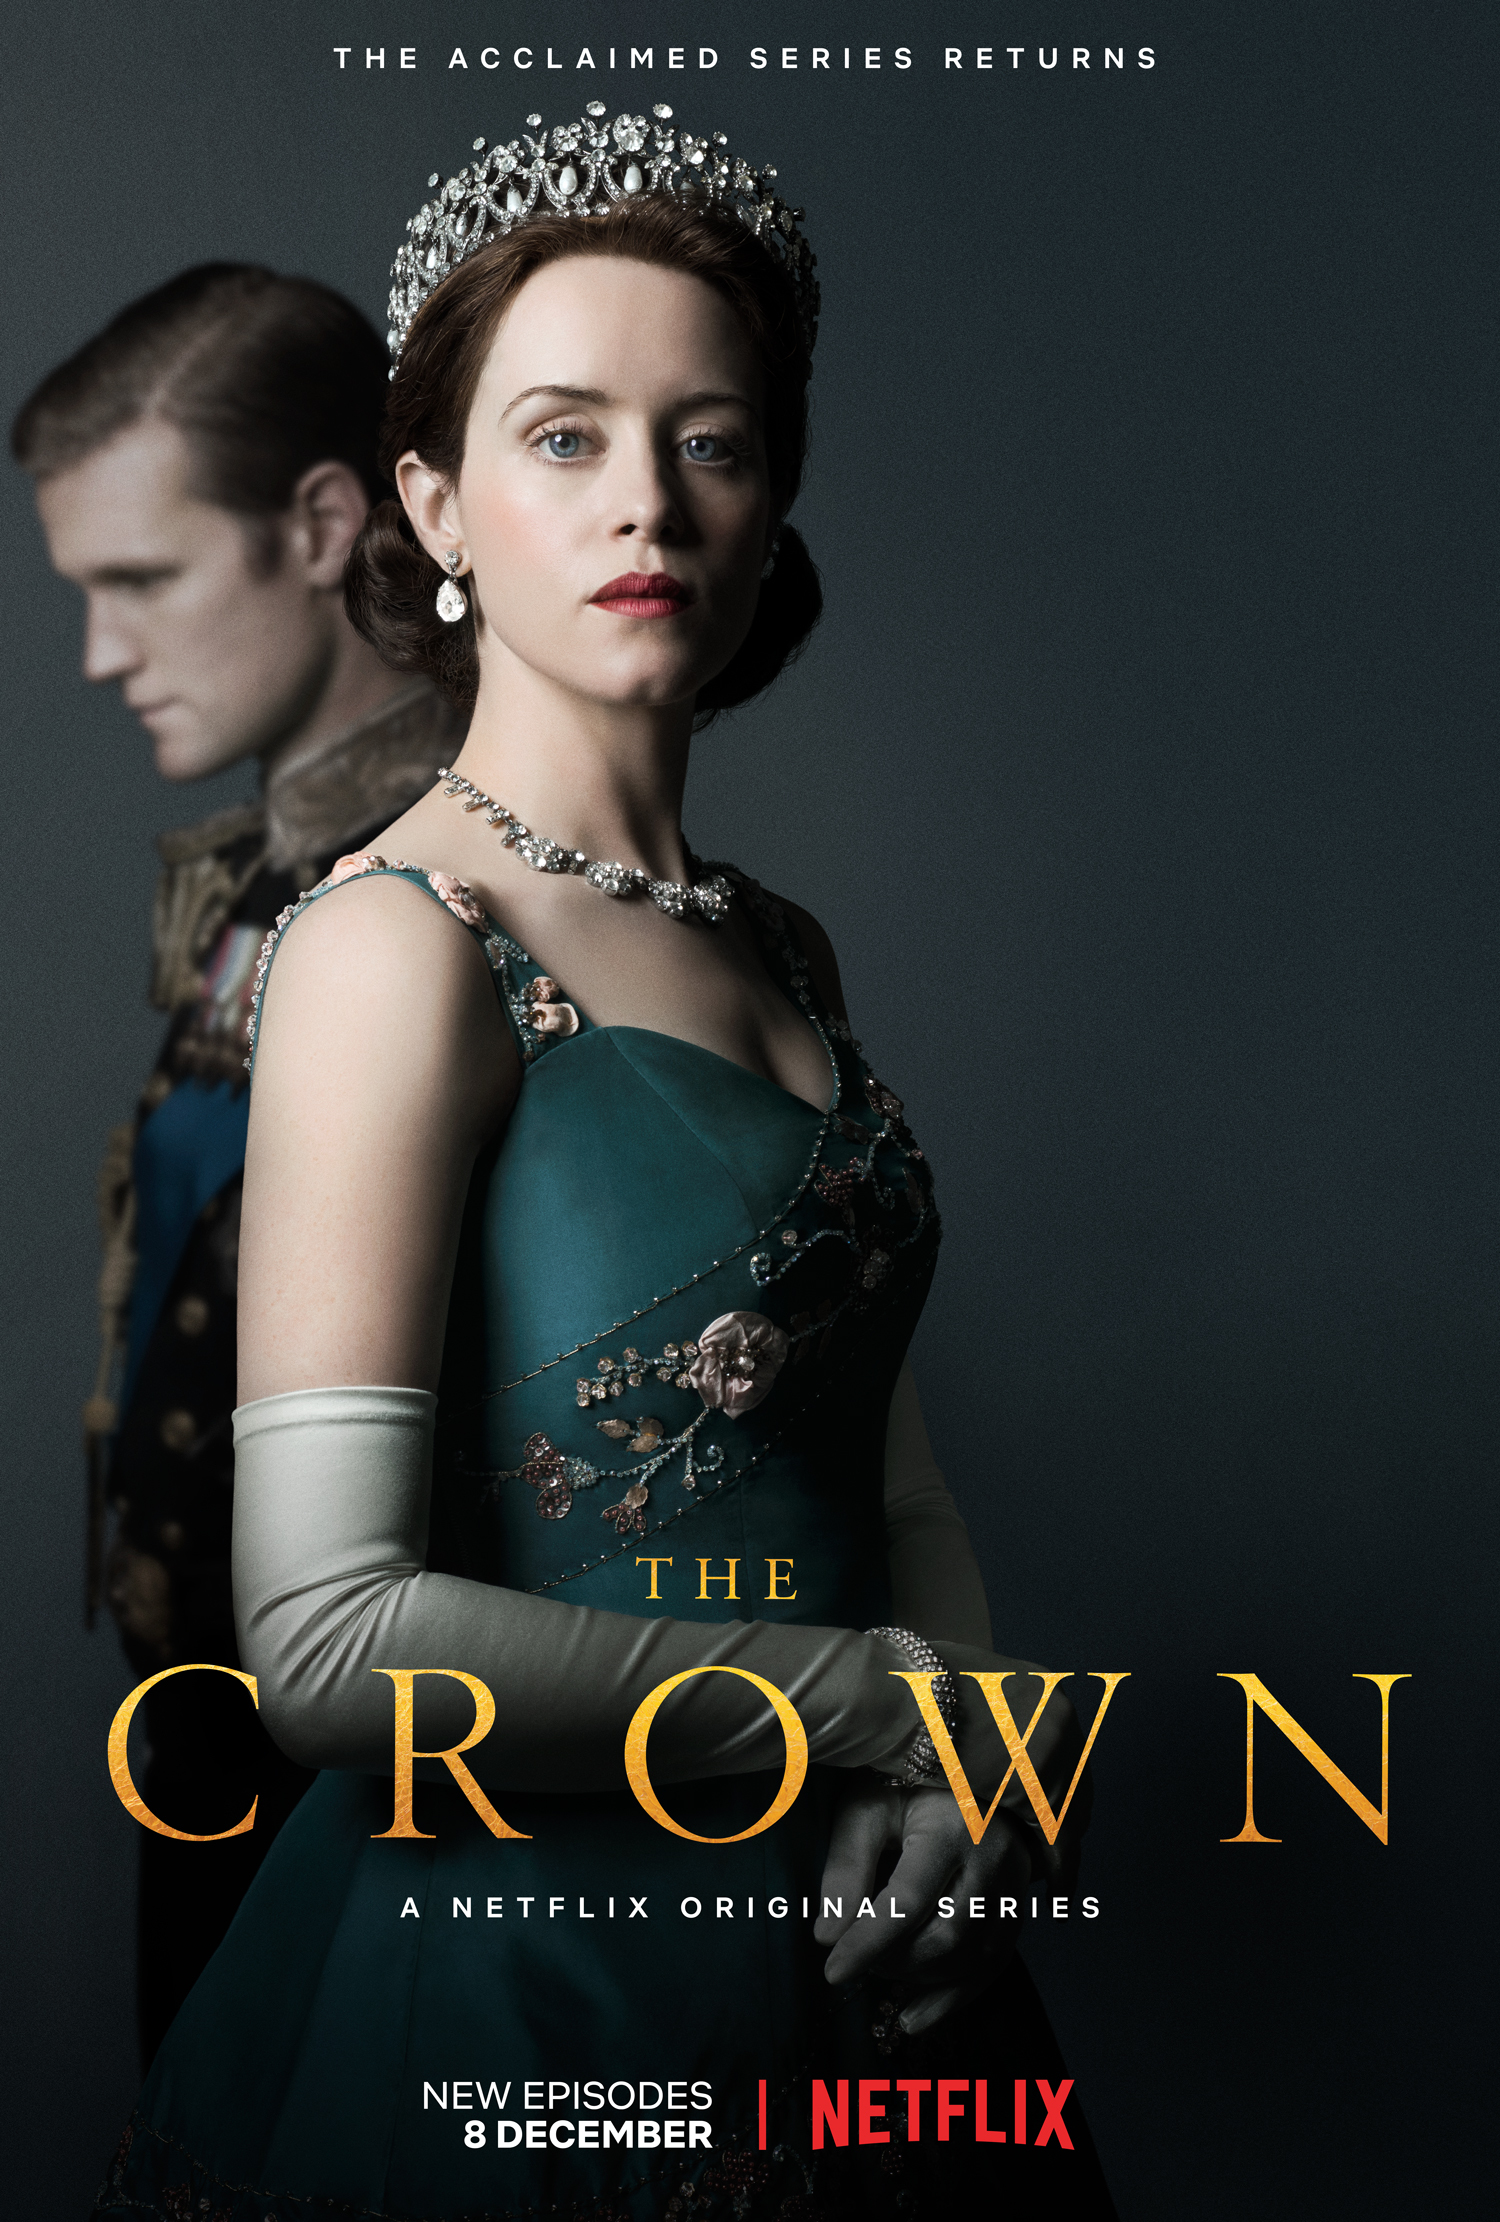 The Crown cast vs  real-life royals - Who's playing whom